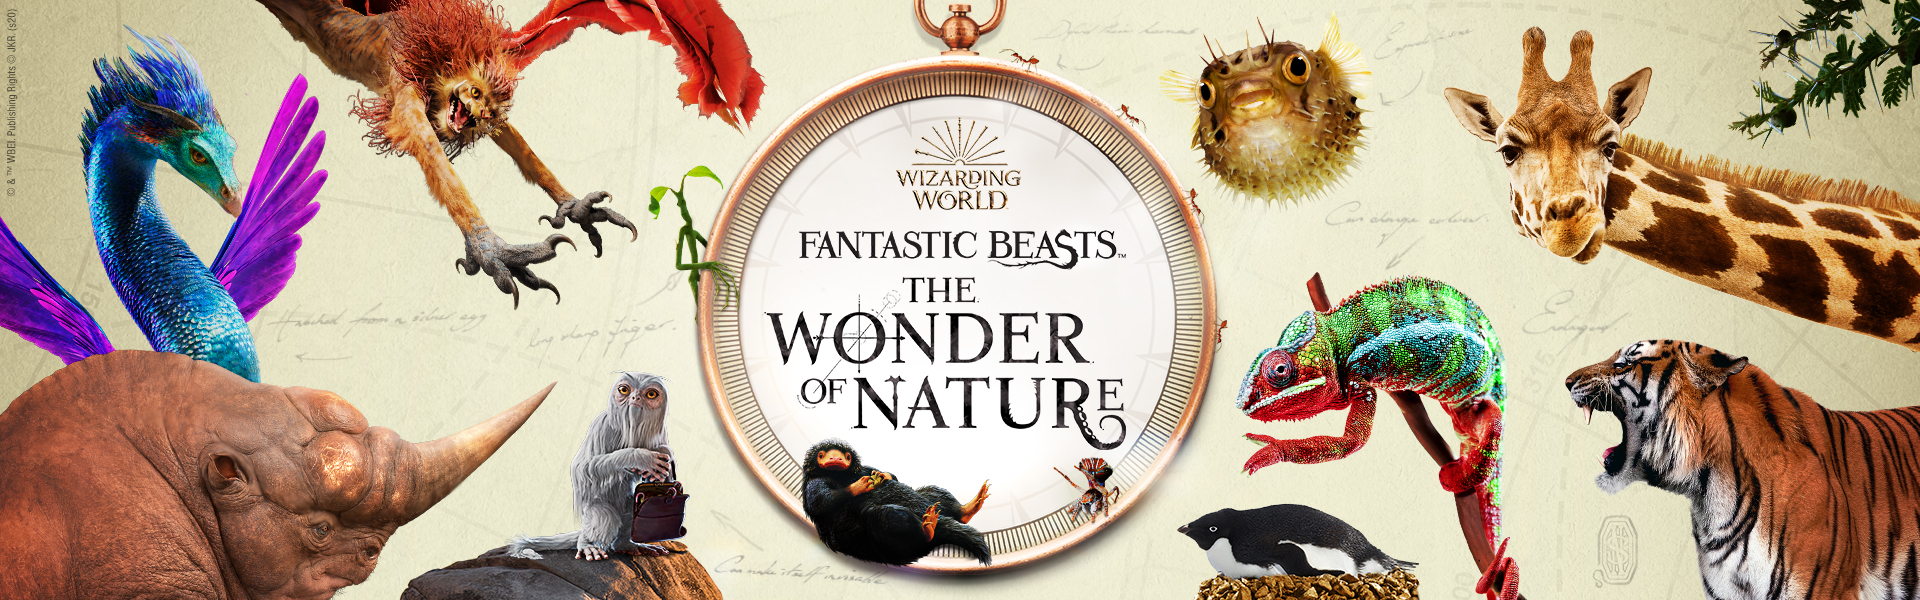 Fantastic Beasts: The Wonder of Nature (book)